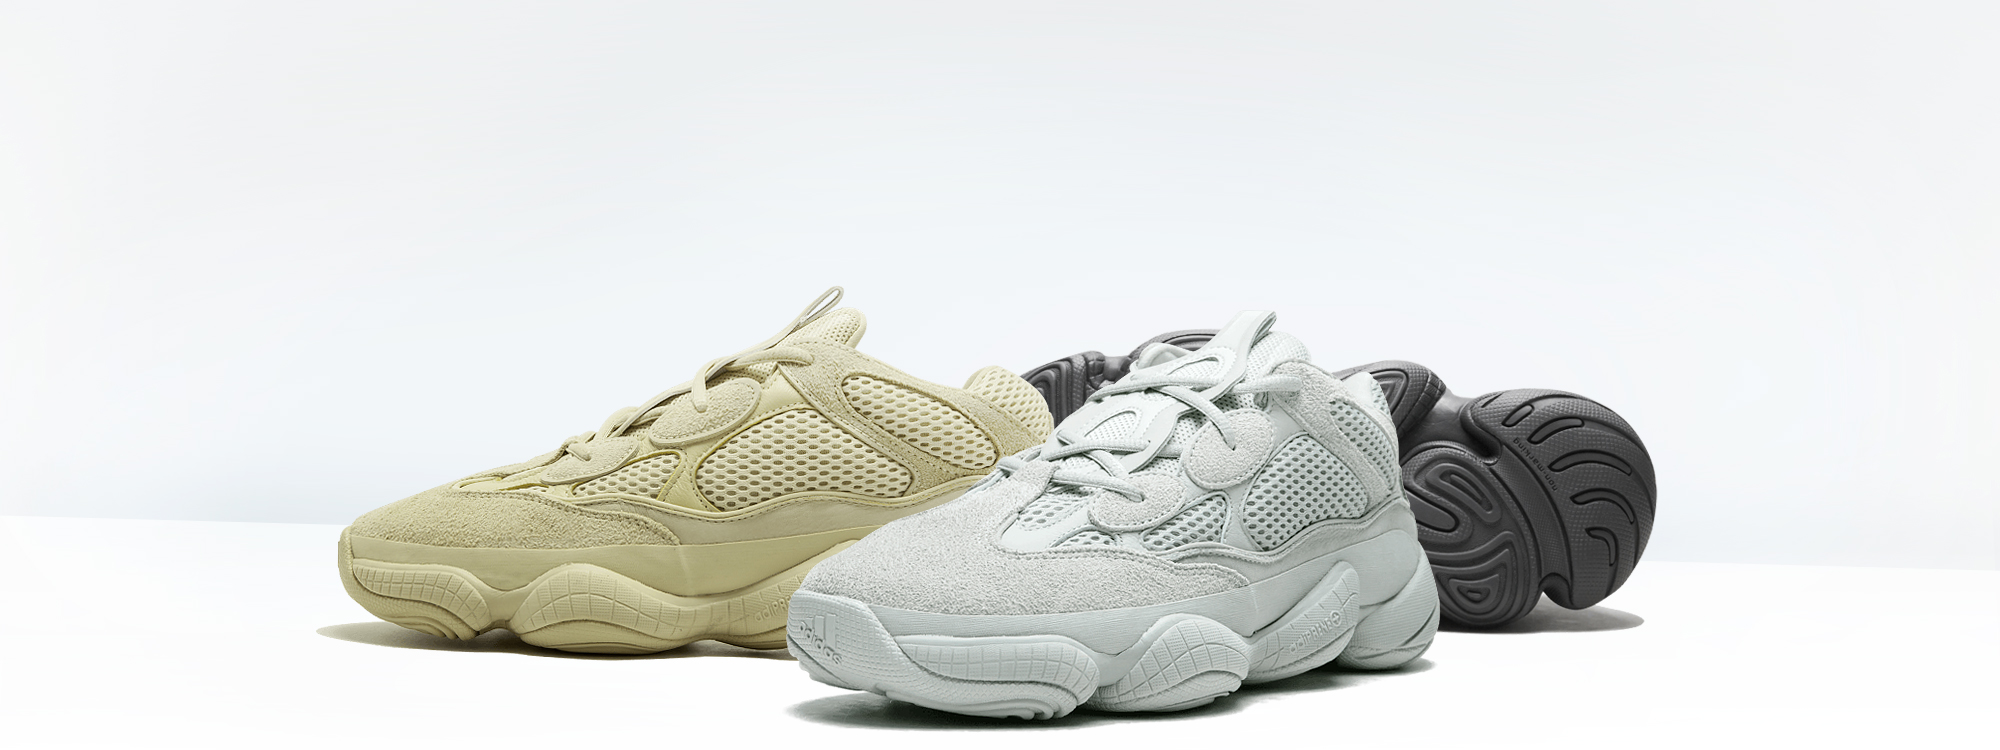 Adidas Yeezy Boost 500  the best mens sneakers 2020